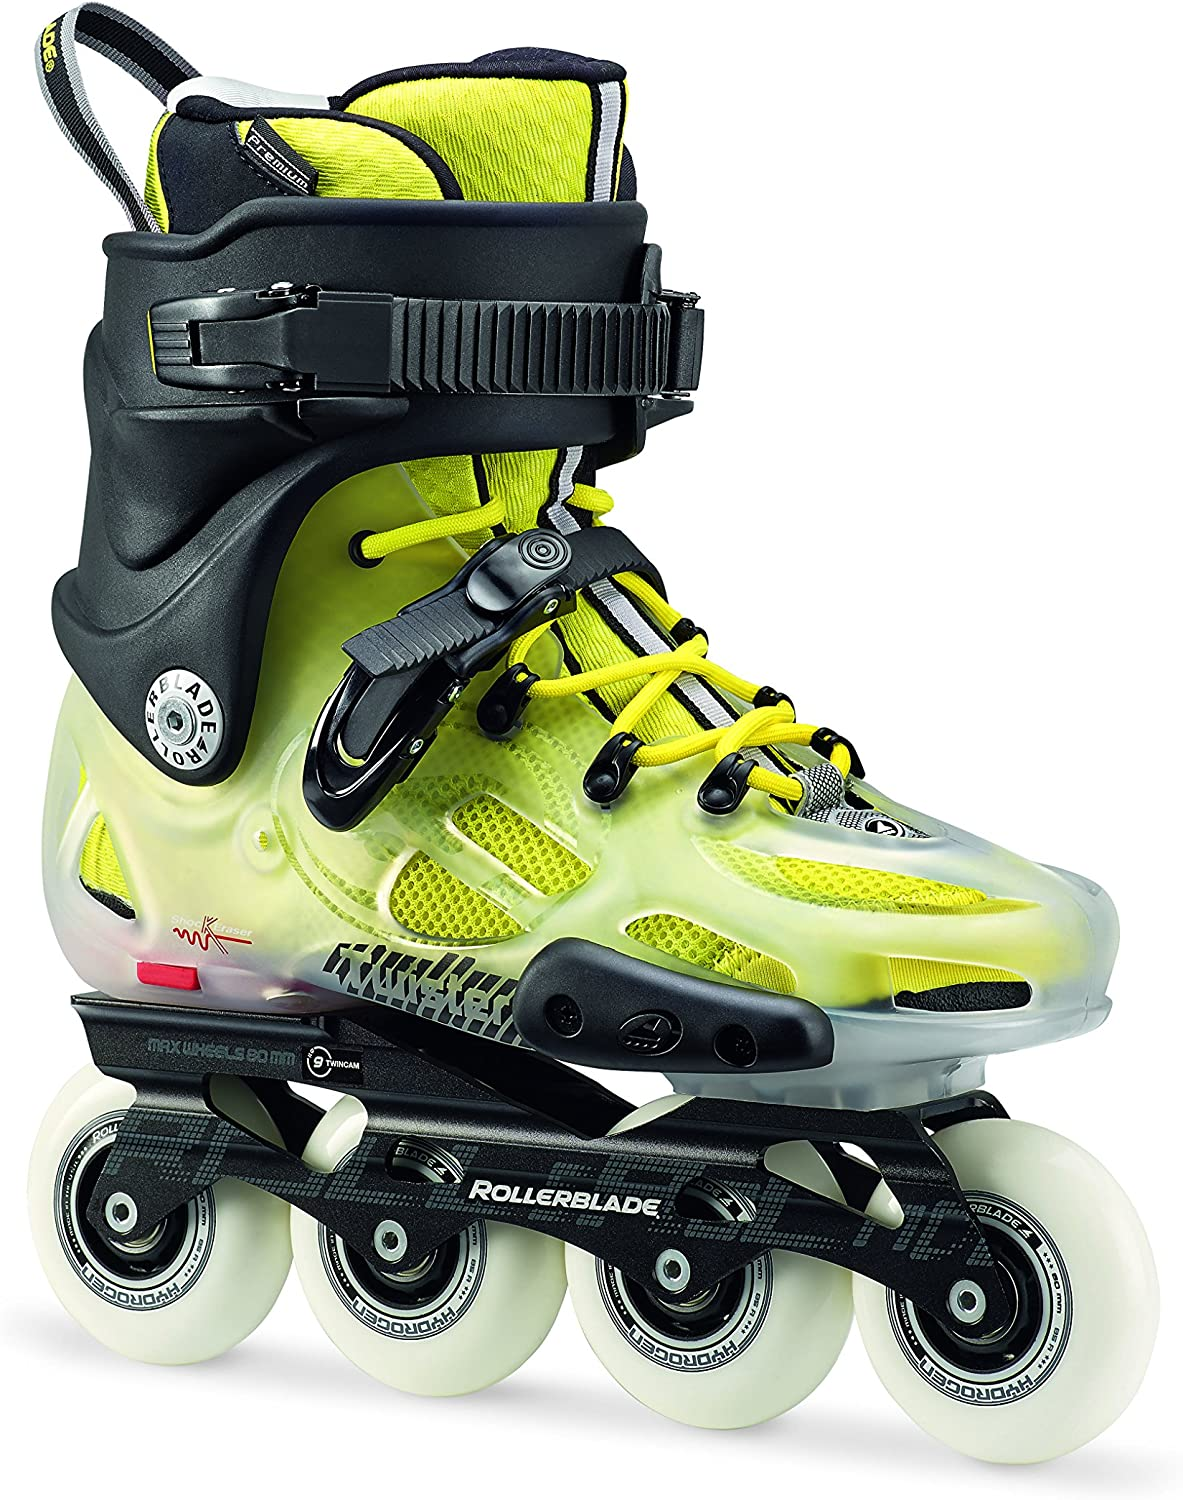 Rollerblade Taille:one Size Roller Patin Complet Freeskate Twister X